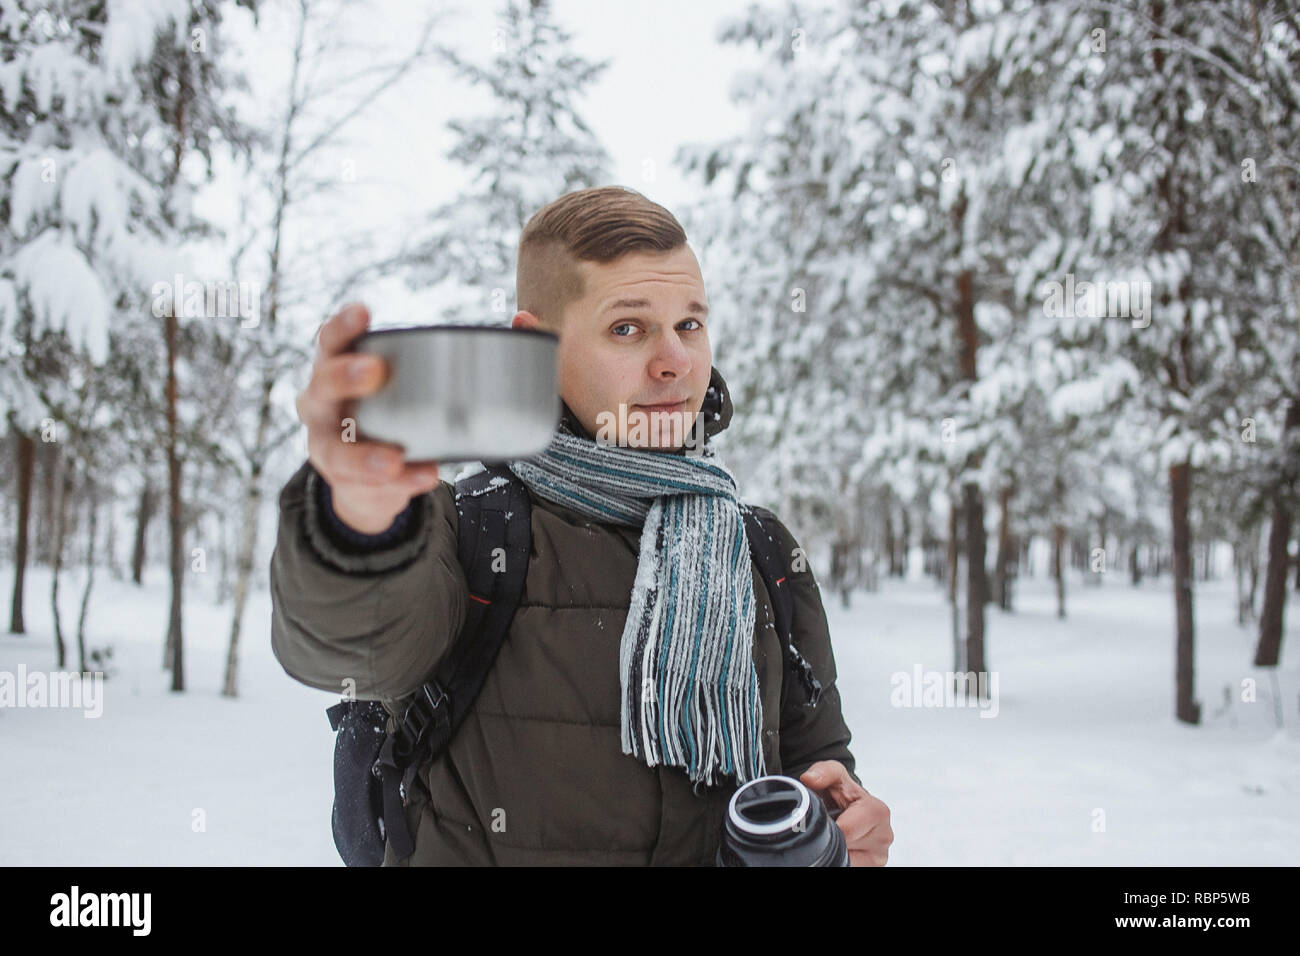 Stylish man with a thermos of hot tea in a snowy conifer forest. - Stock Image